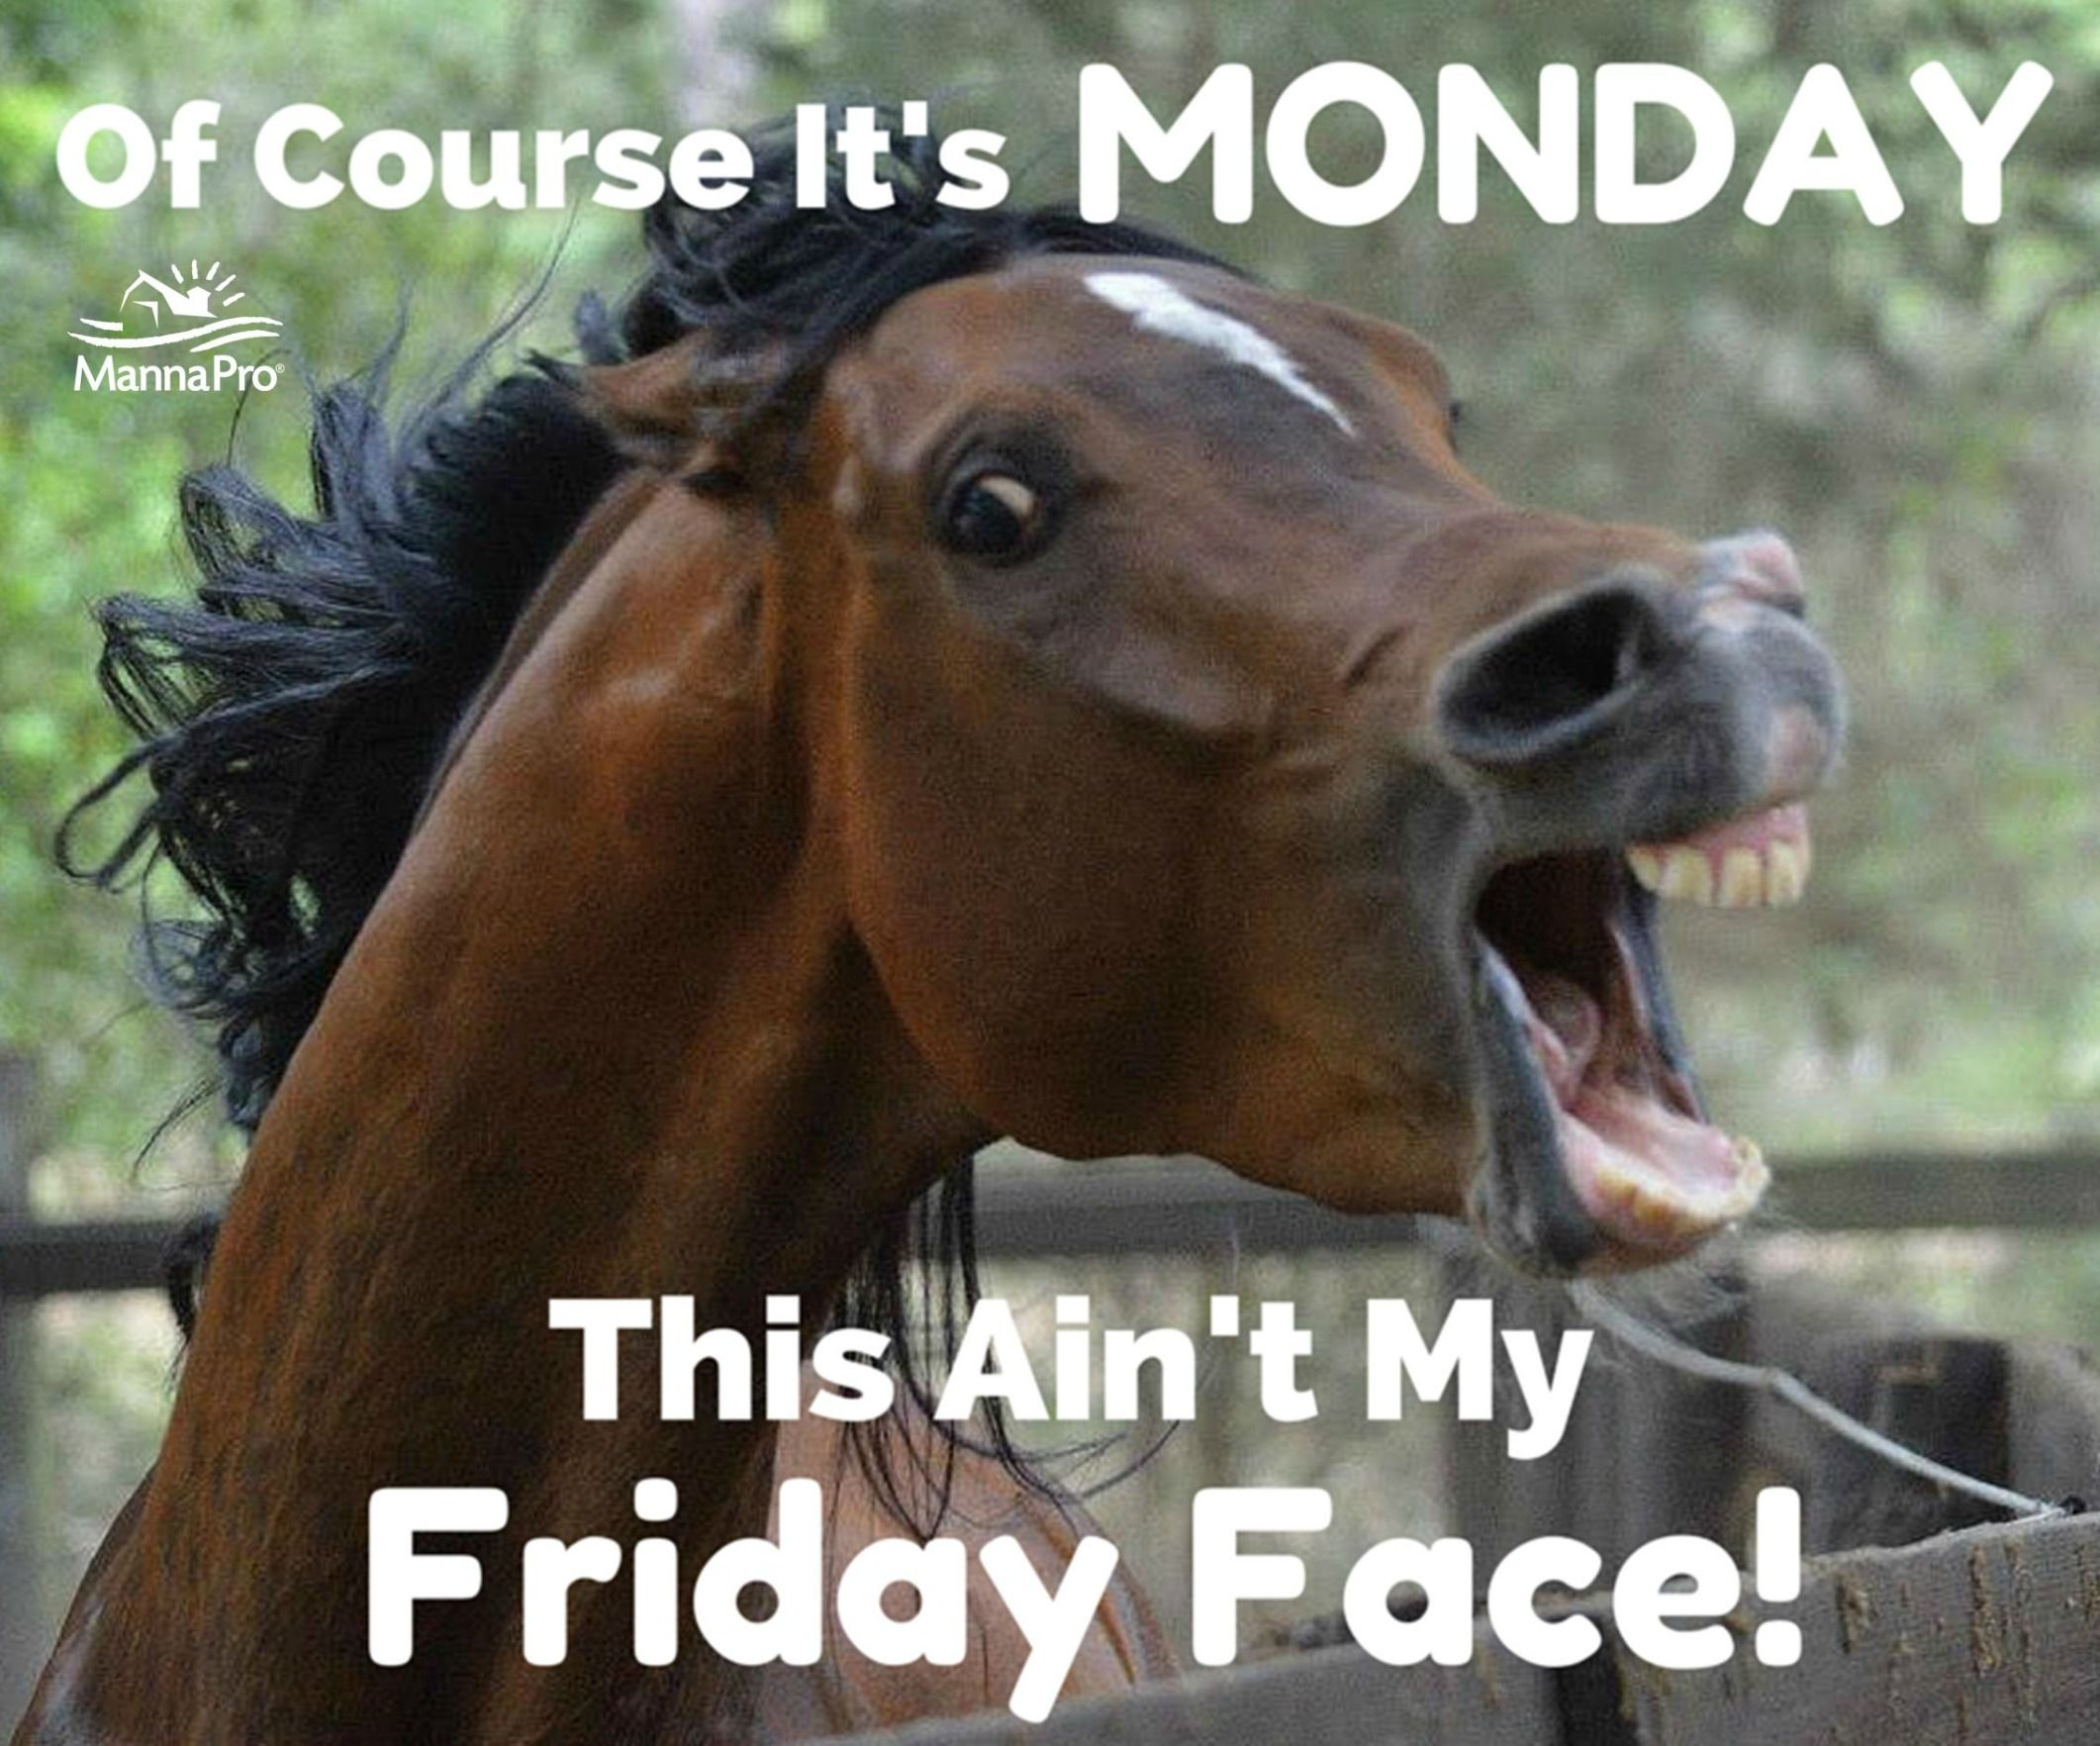 71247d02a9d75b0822dec2ba44e1cb97 happy monday! funny horse sayings humor pinterest funny